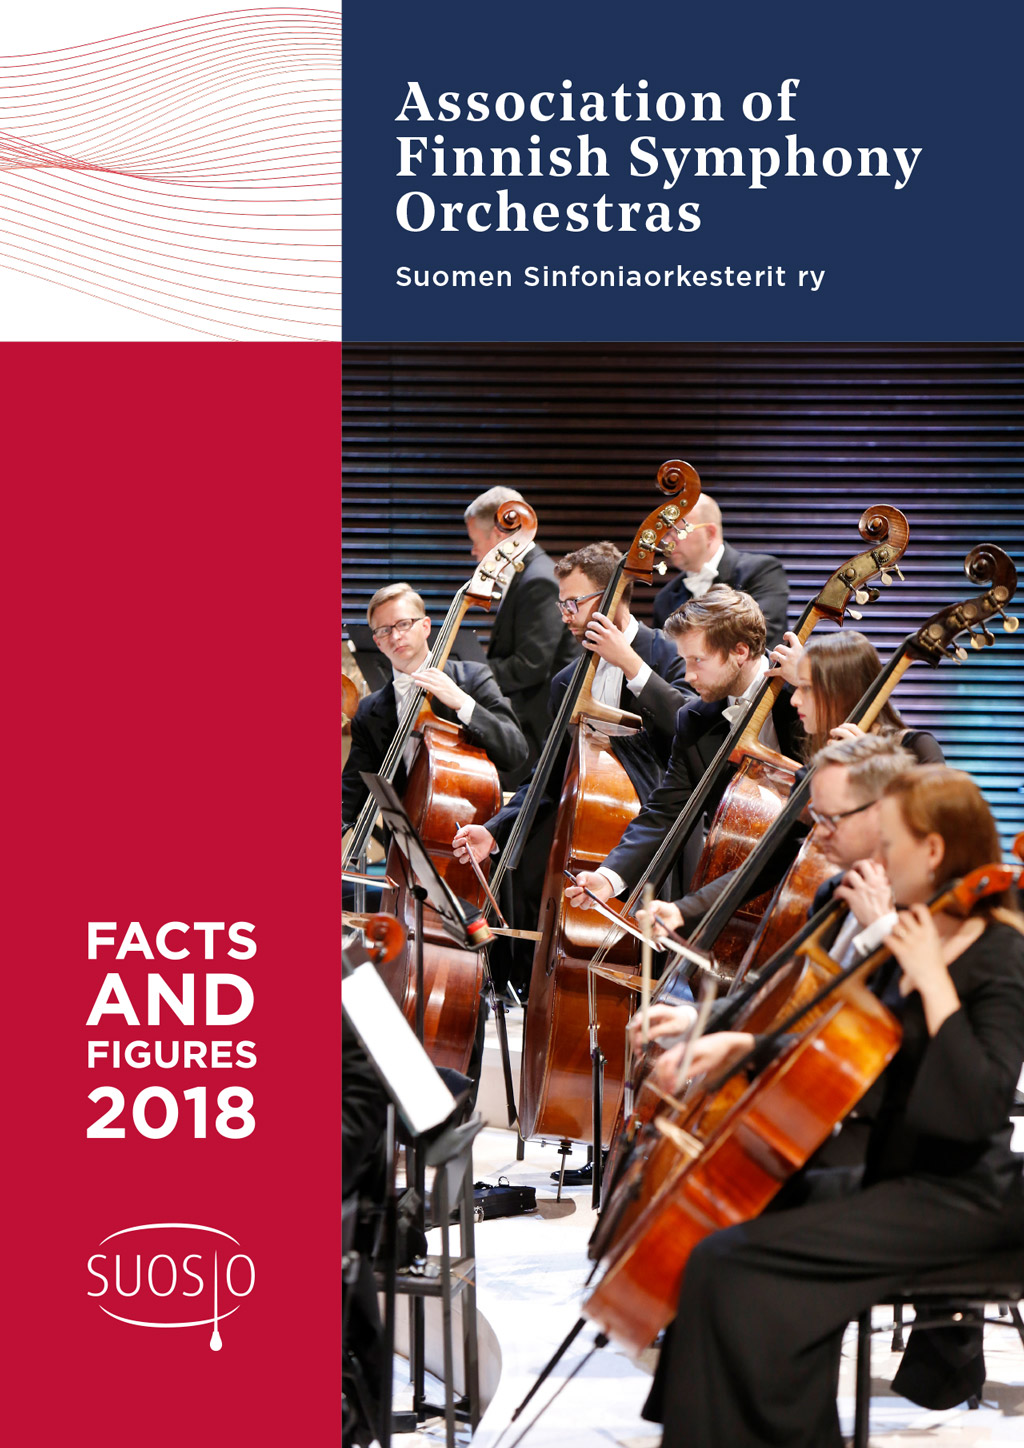 Facts and figures of member orchestras 2018